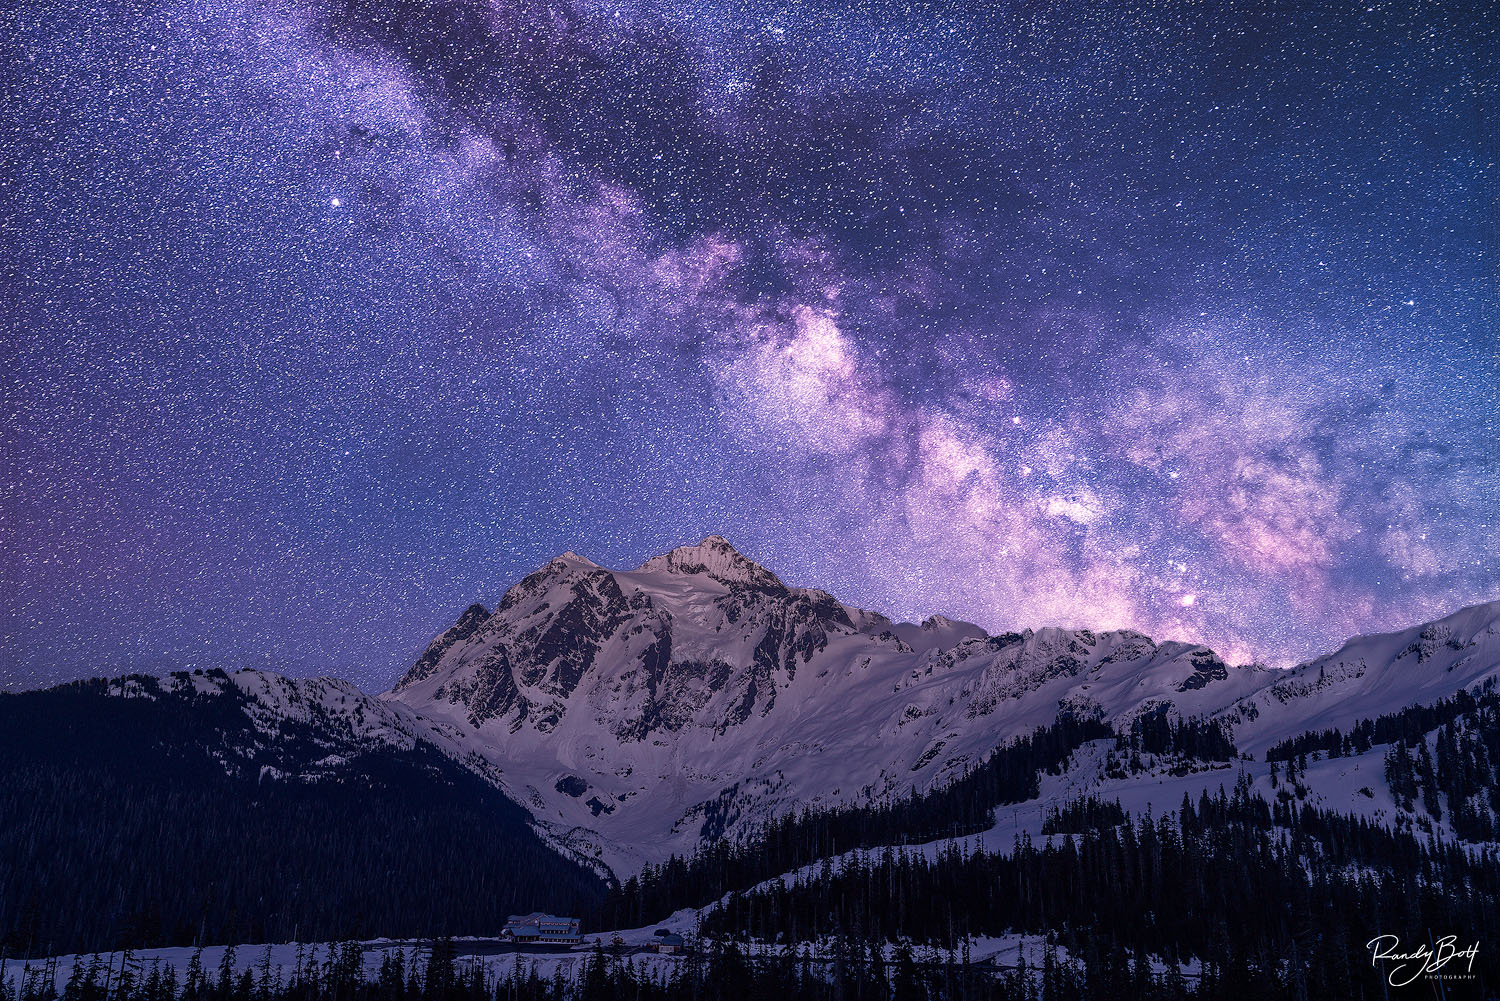 Mount Shuksan with the Milky Way galaxy in the north Cascades